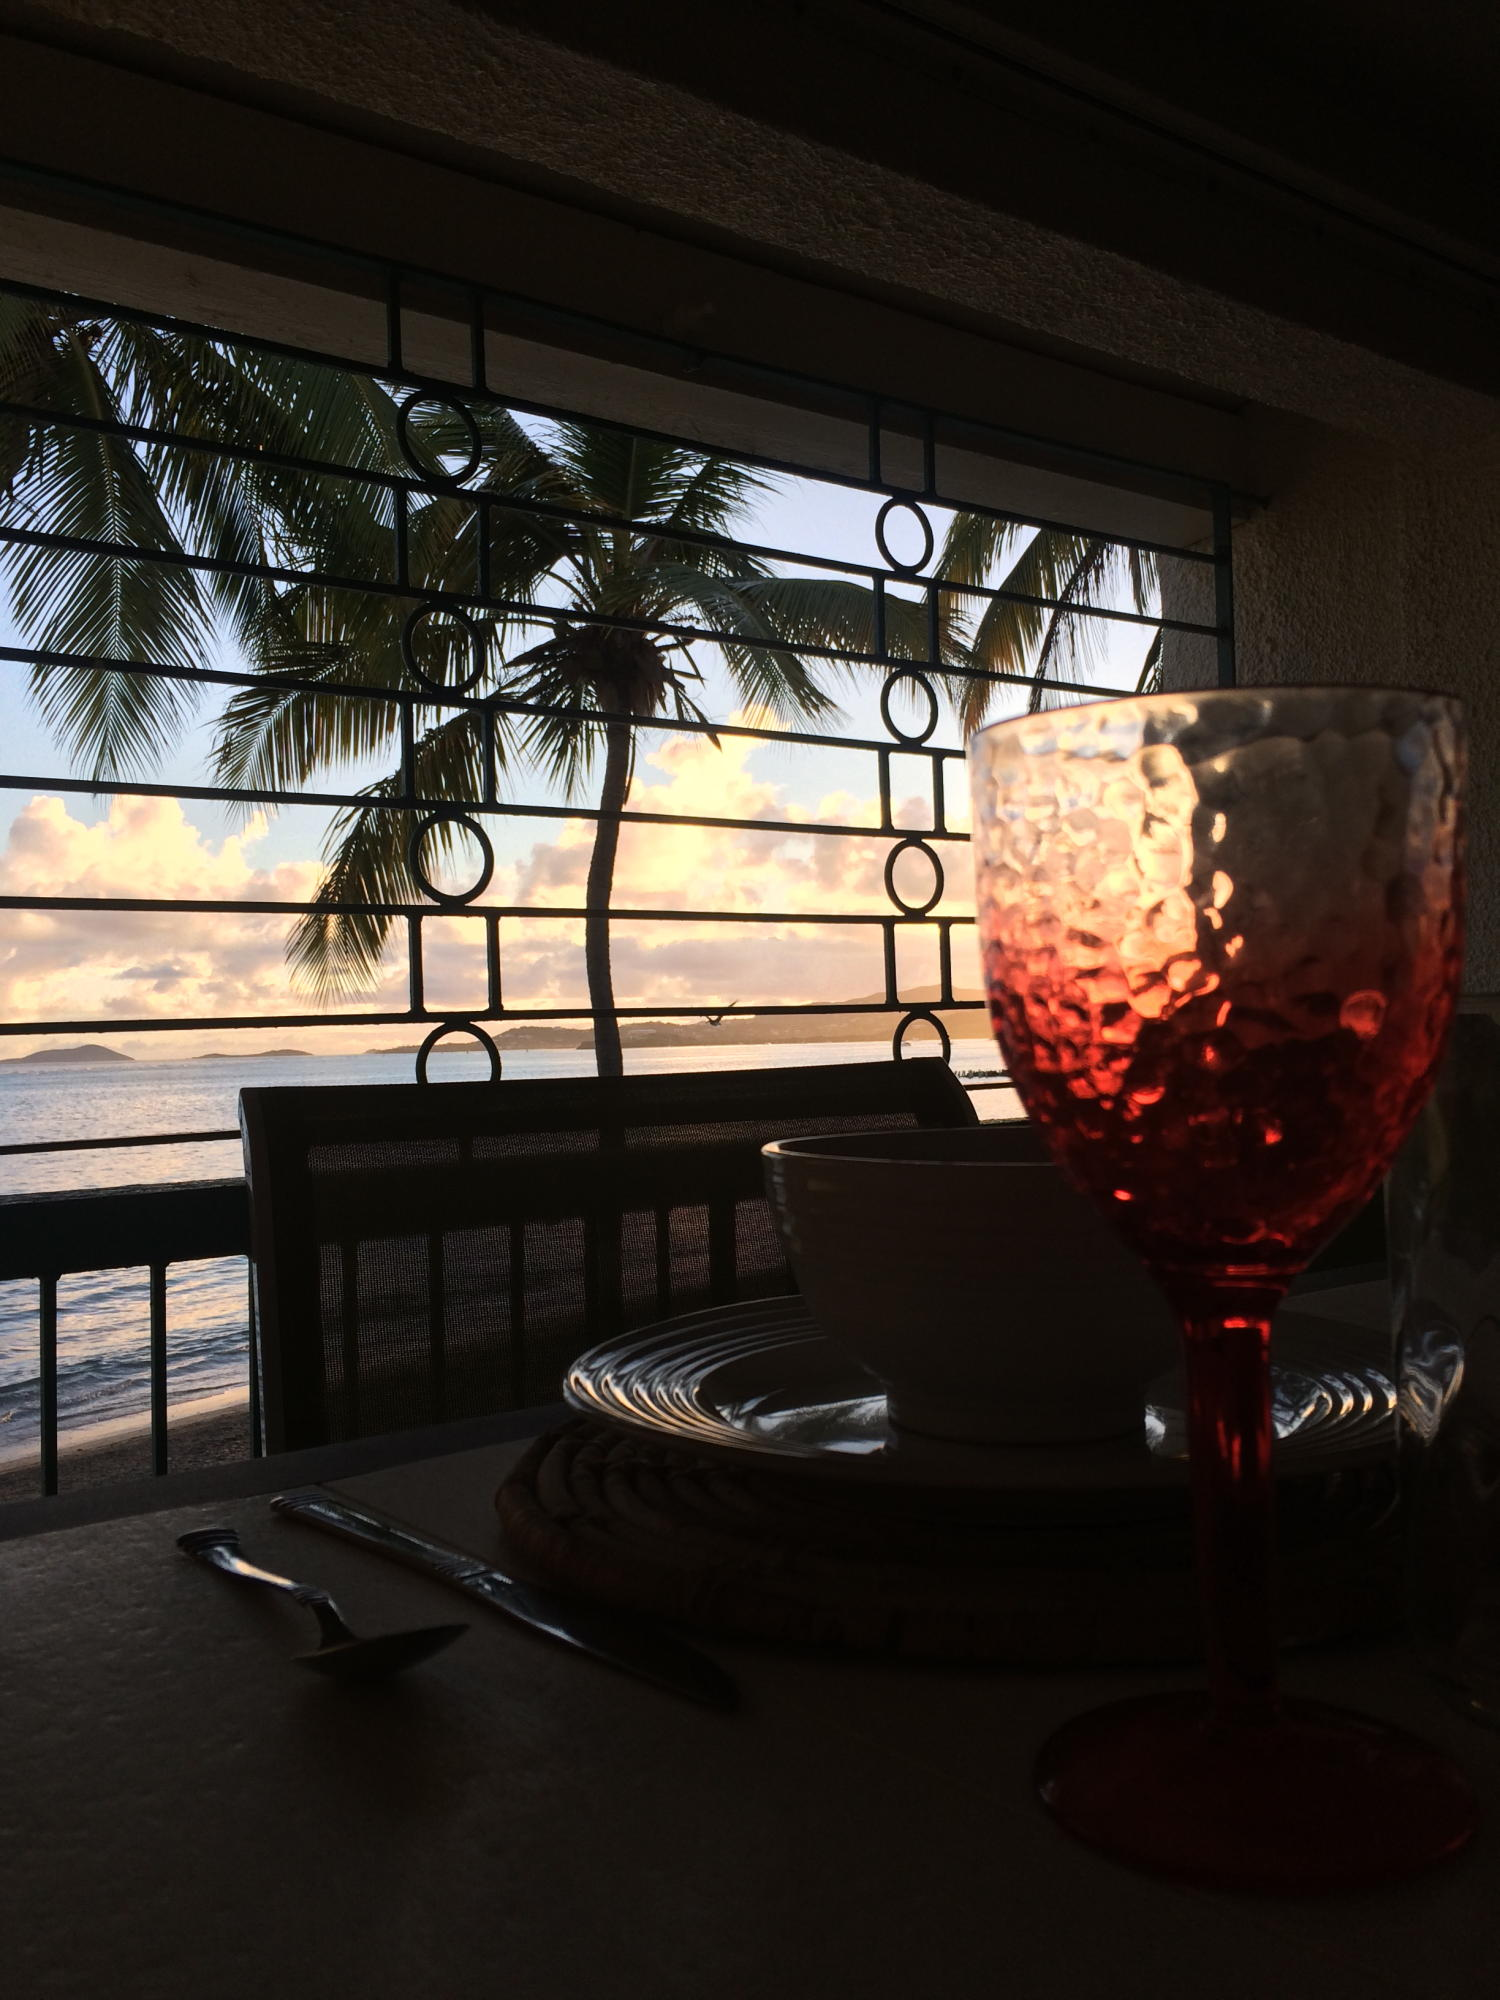 Porch - Lovely view with red wine glass